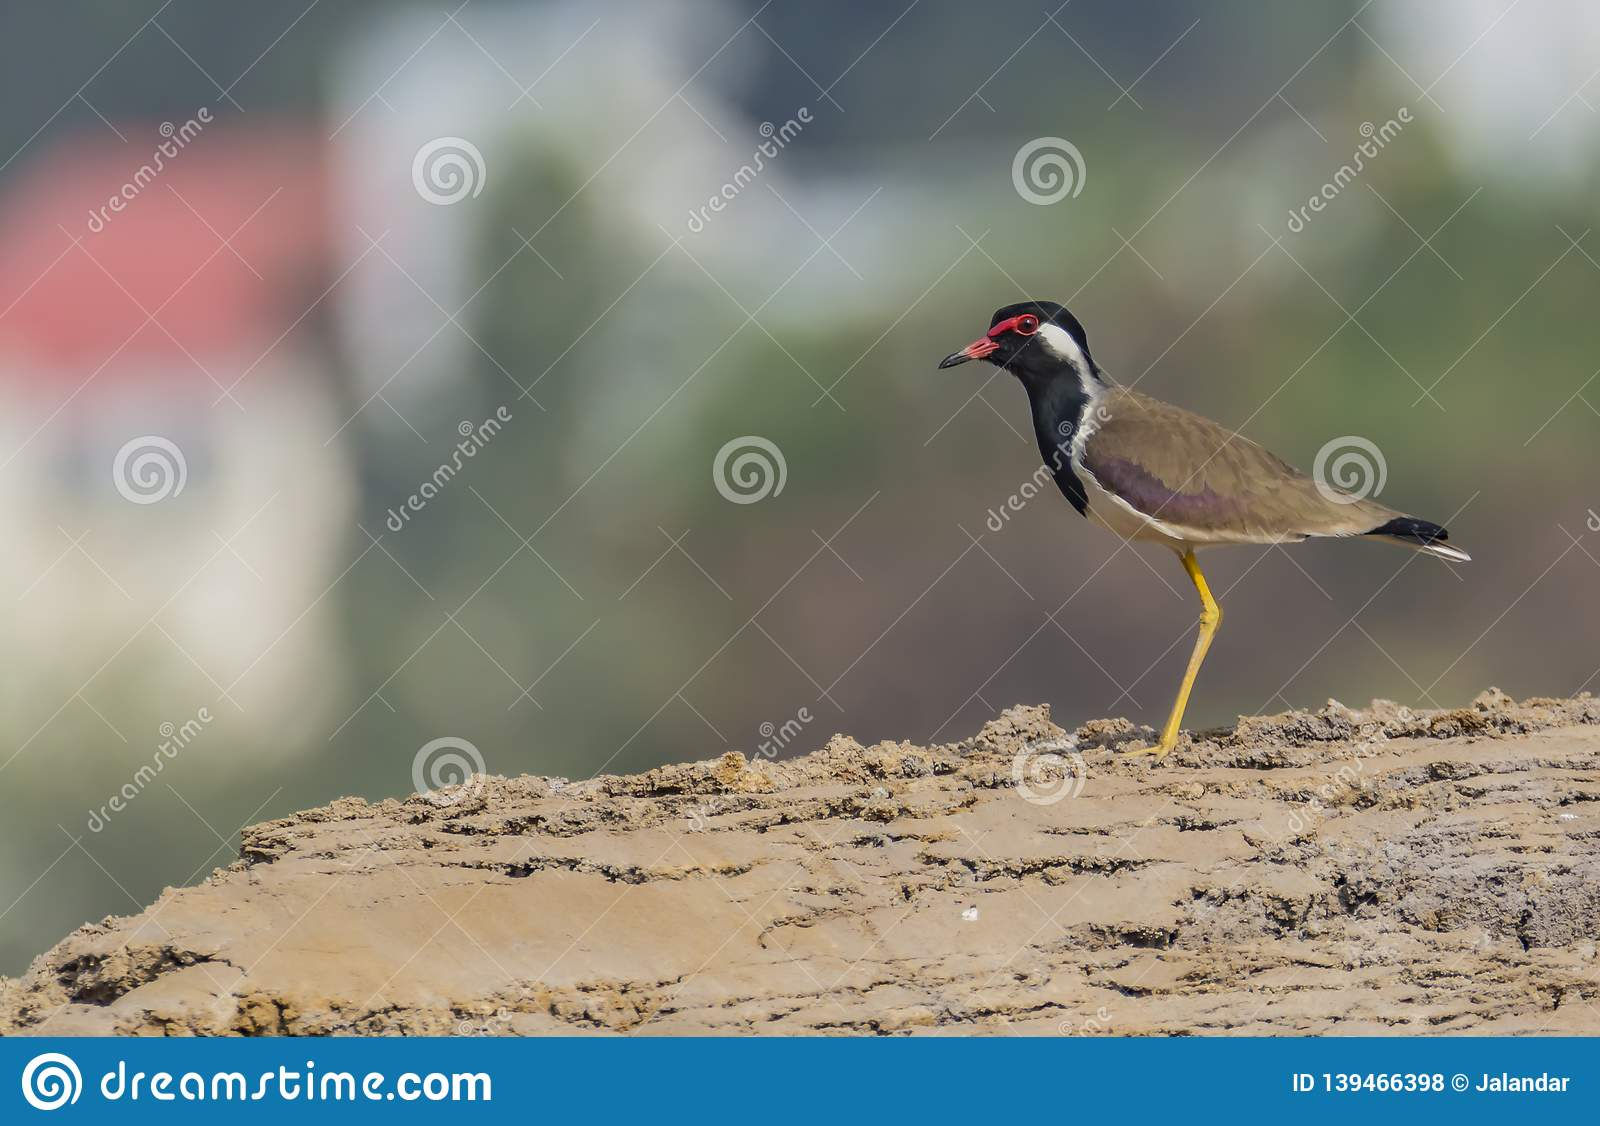 Red wattled lapwing or the Vanellus indicus